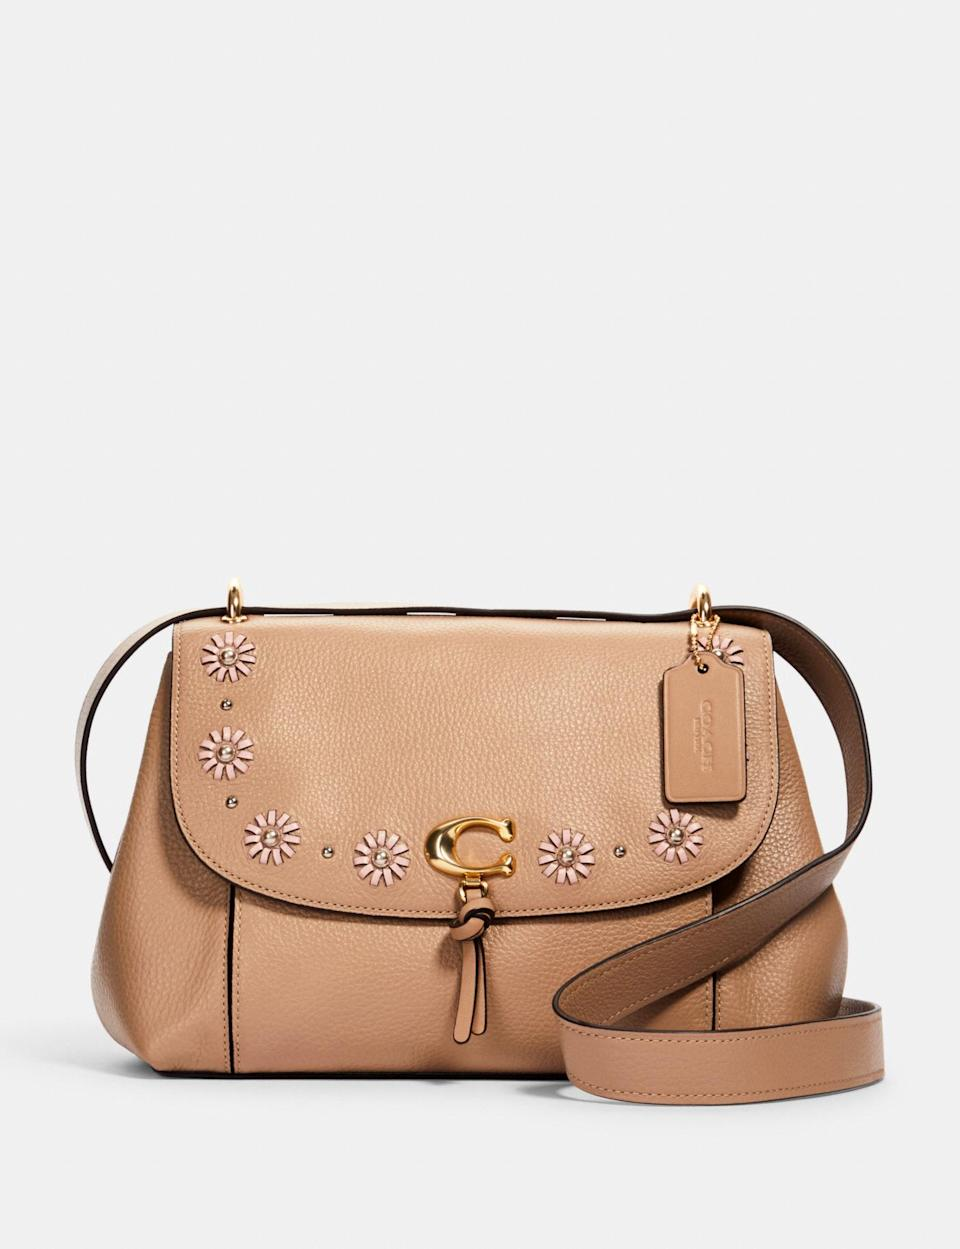 Remi Shoulder Bag With Whipstitch Daisy Applique.